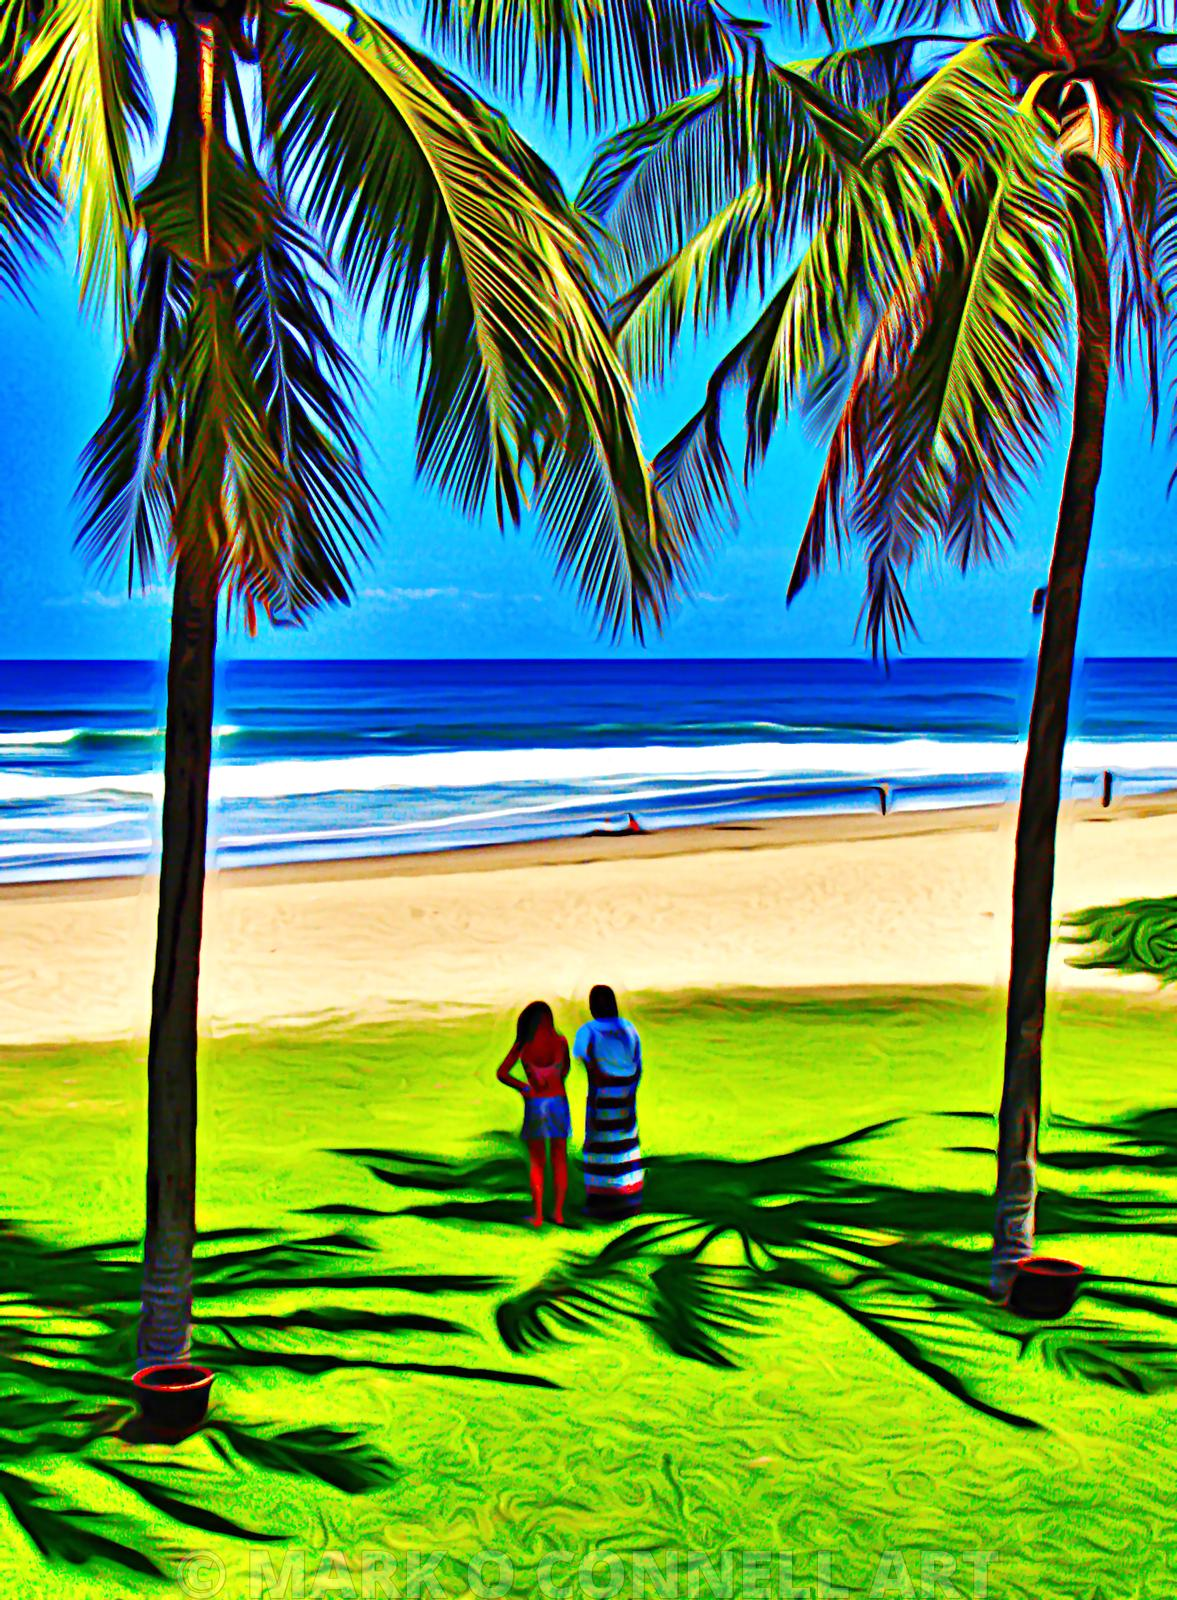 art,painting,airbrush,bali,indonesia,beach,palm trees,sea,waves,walkers,sand